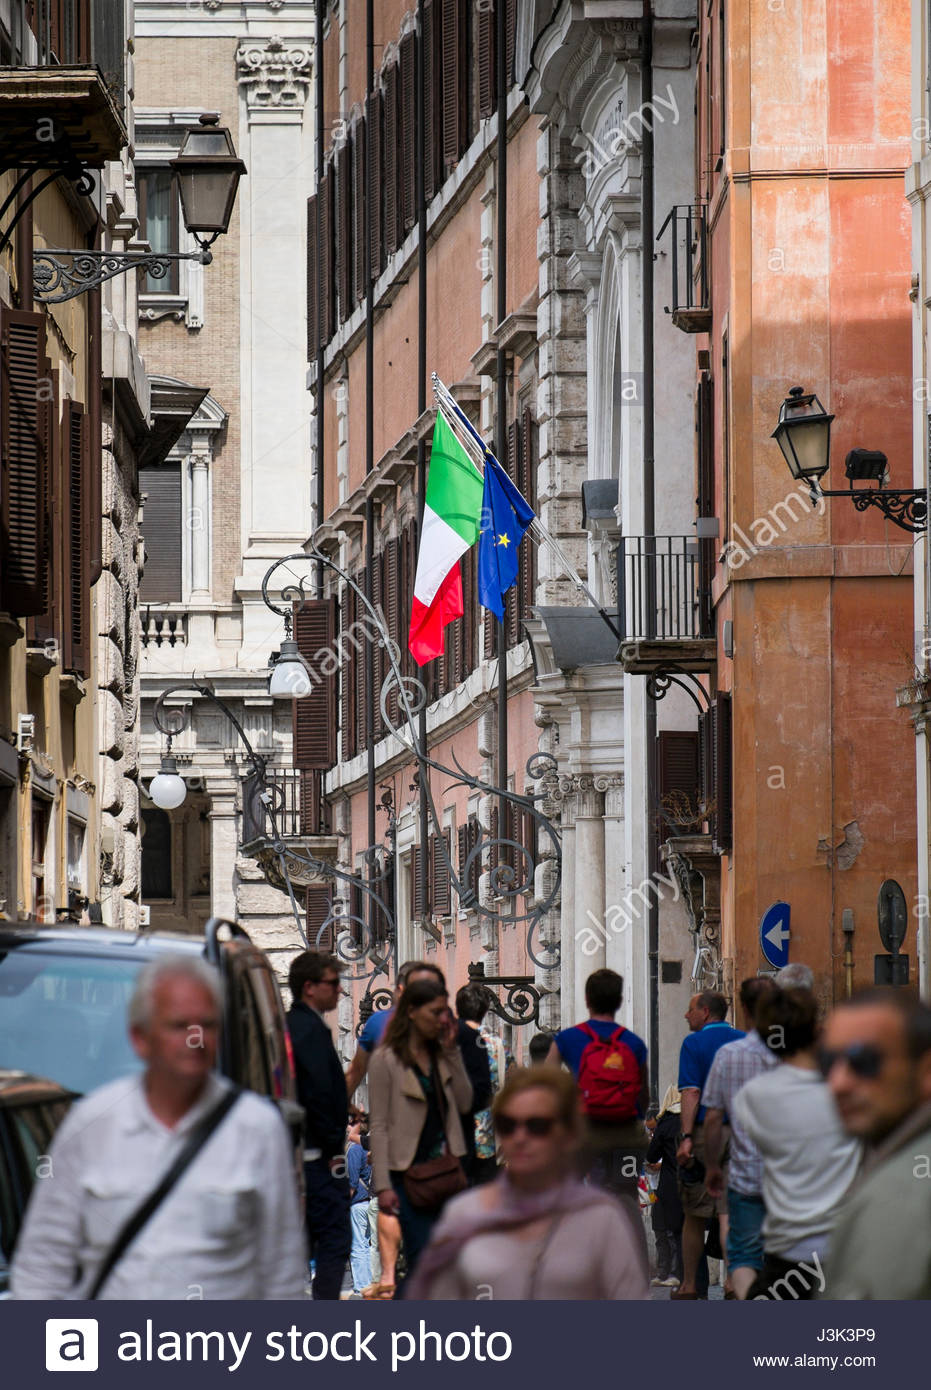 Italian and European Union flags on poles from a balcony, Municipio I, Rome, Lazio, Italy - Stock Image